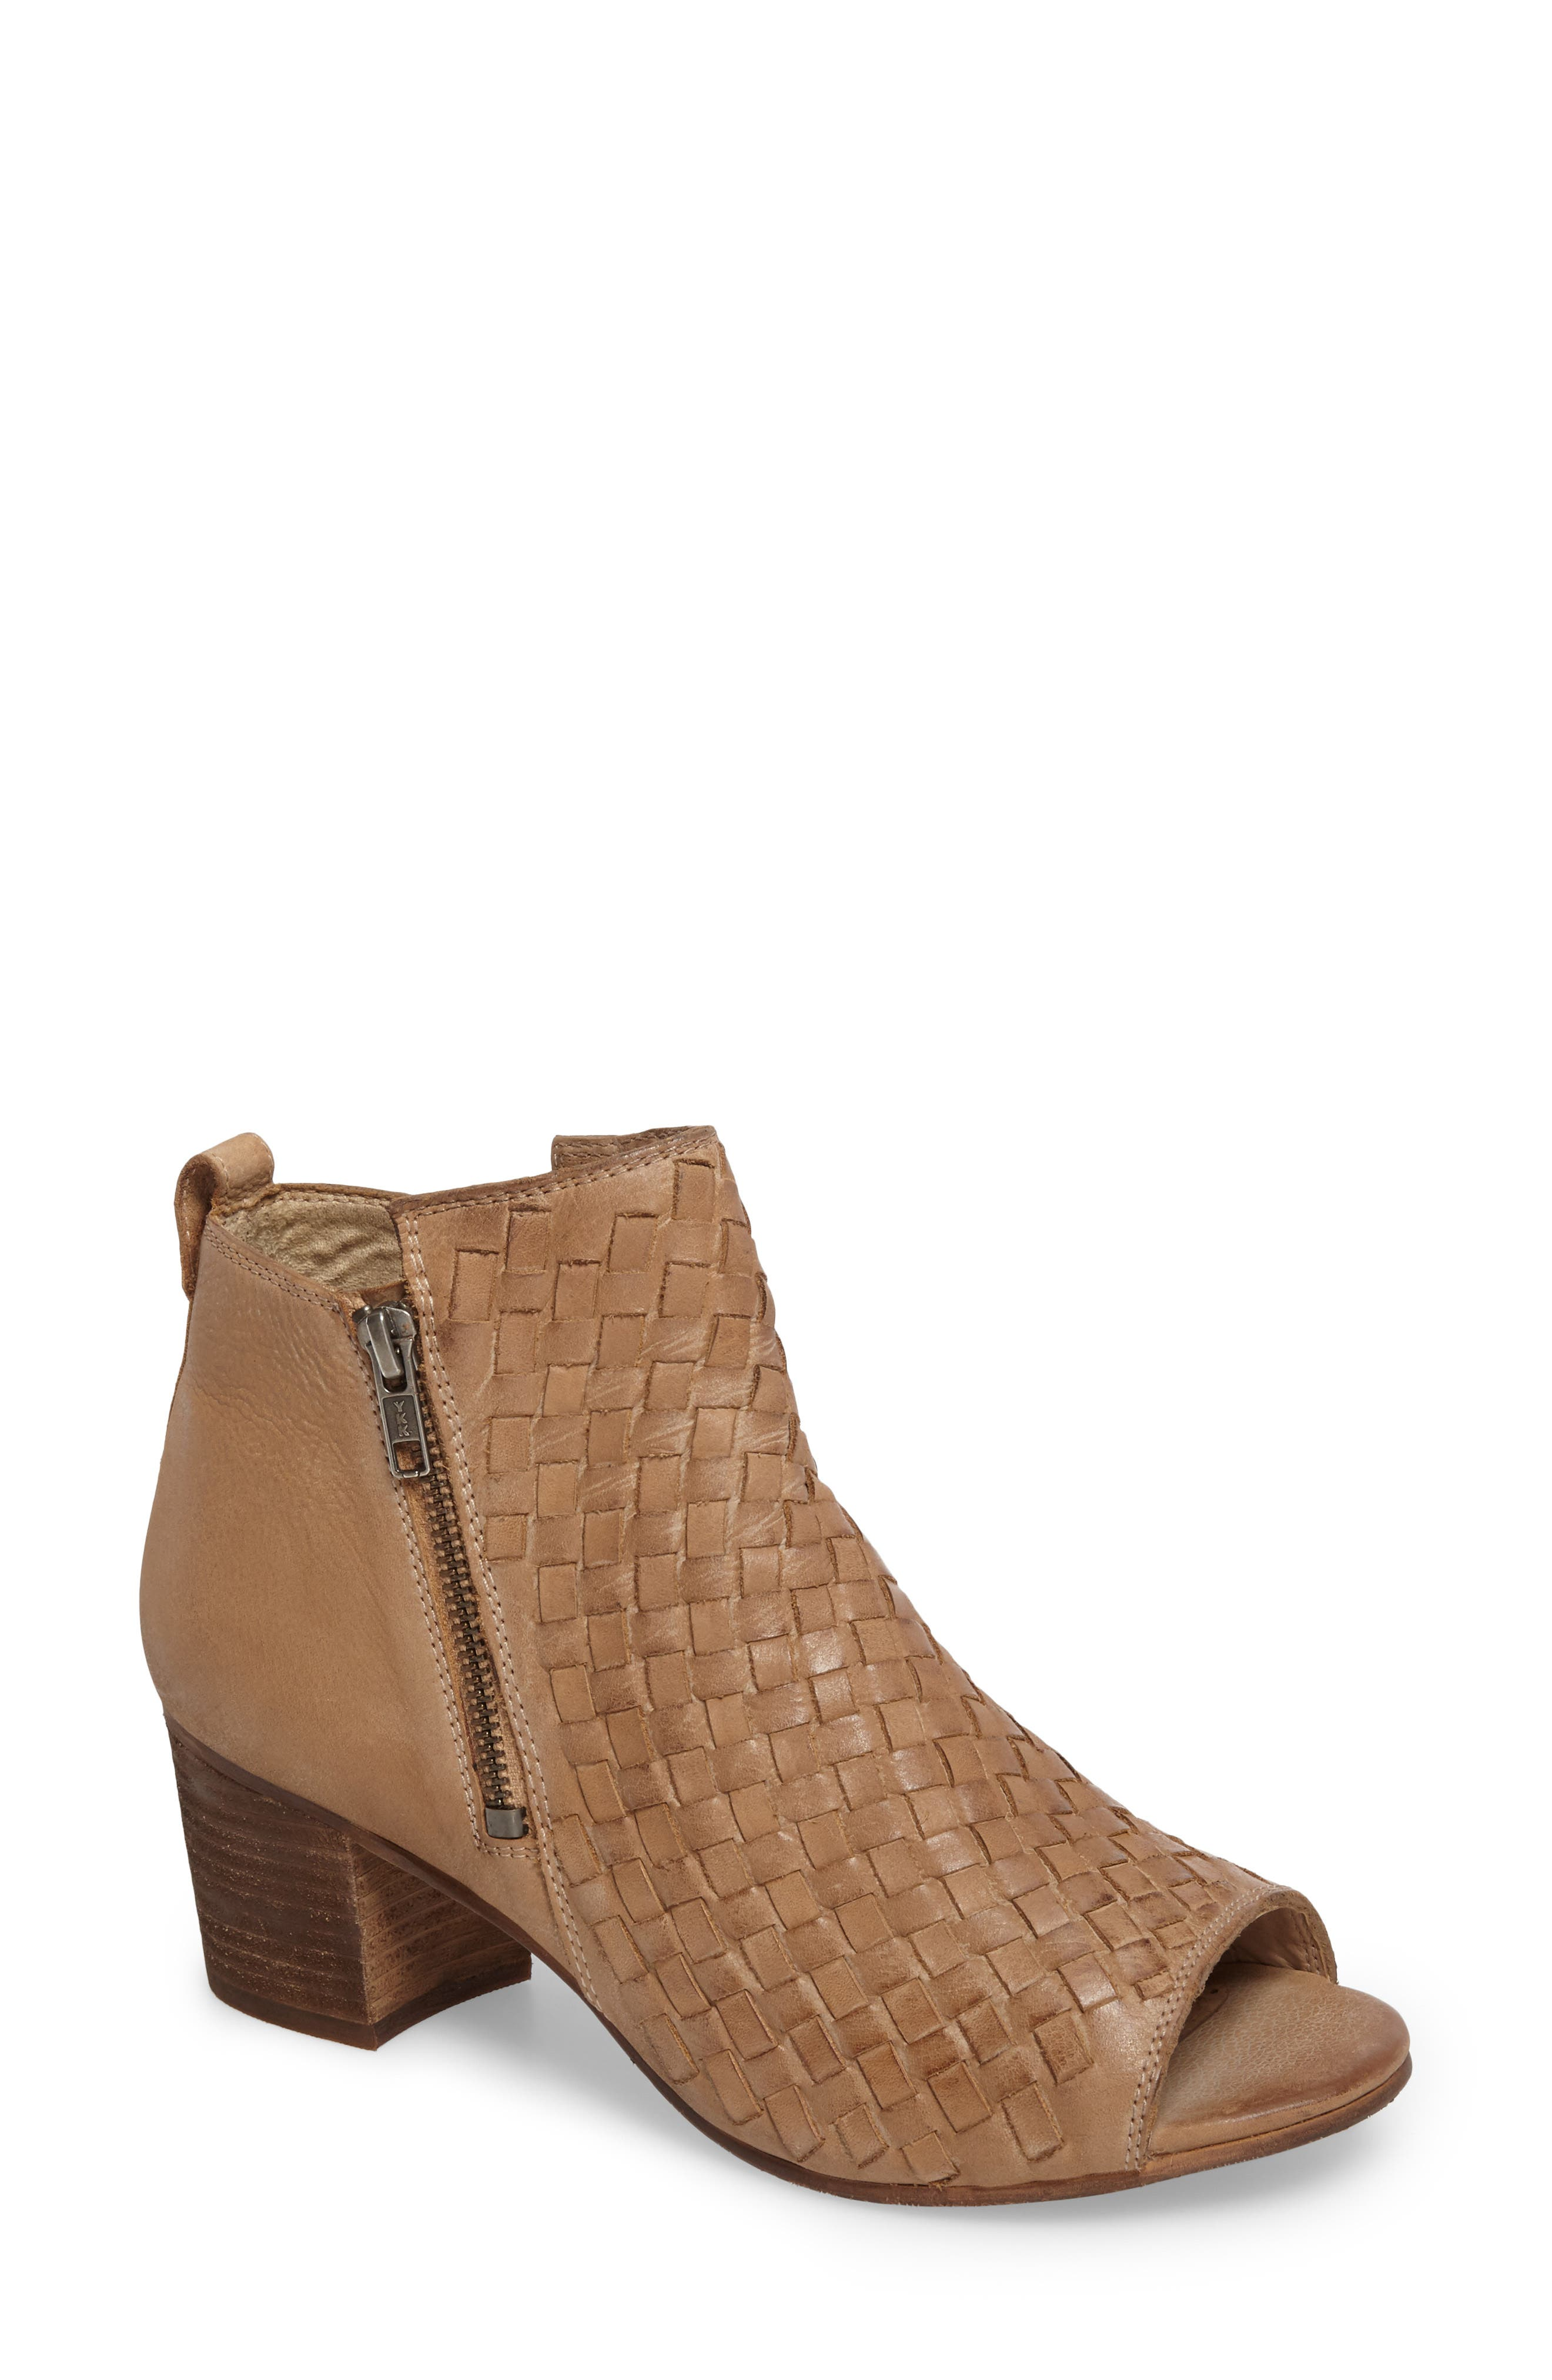 Main Image - Naughty Monkey Cacey Open Toe Bootie (Women)